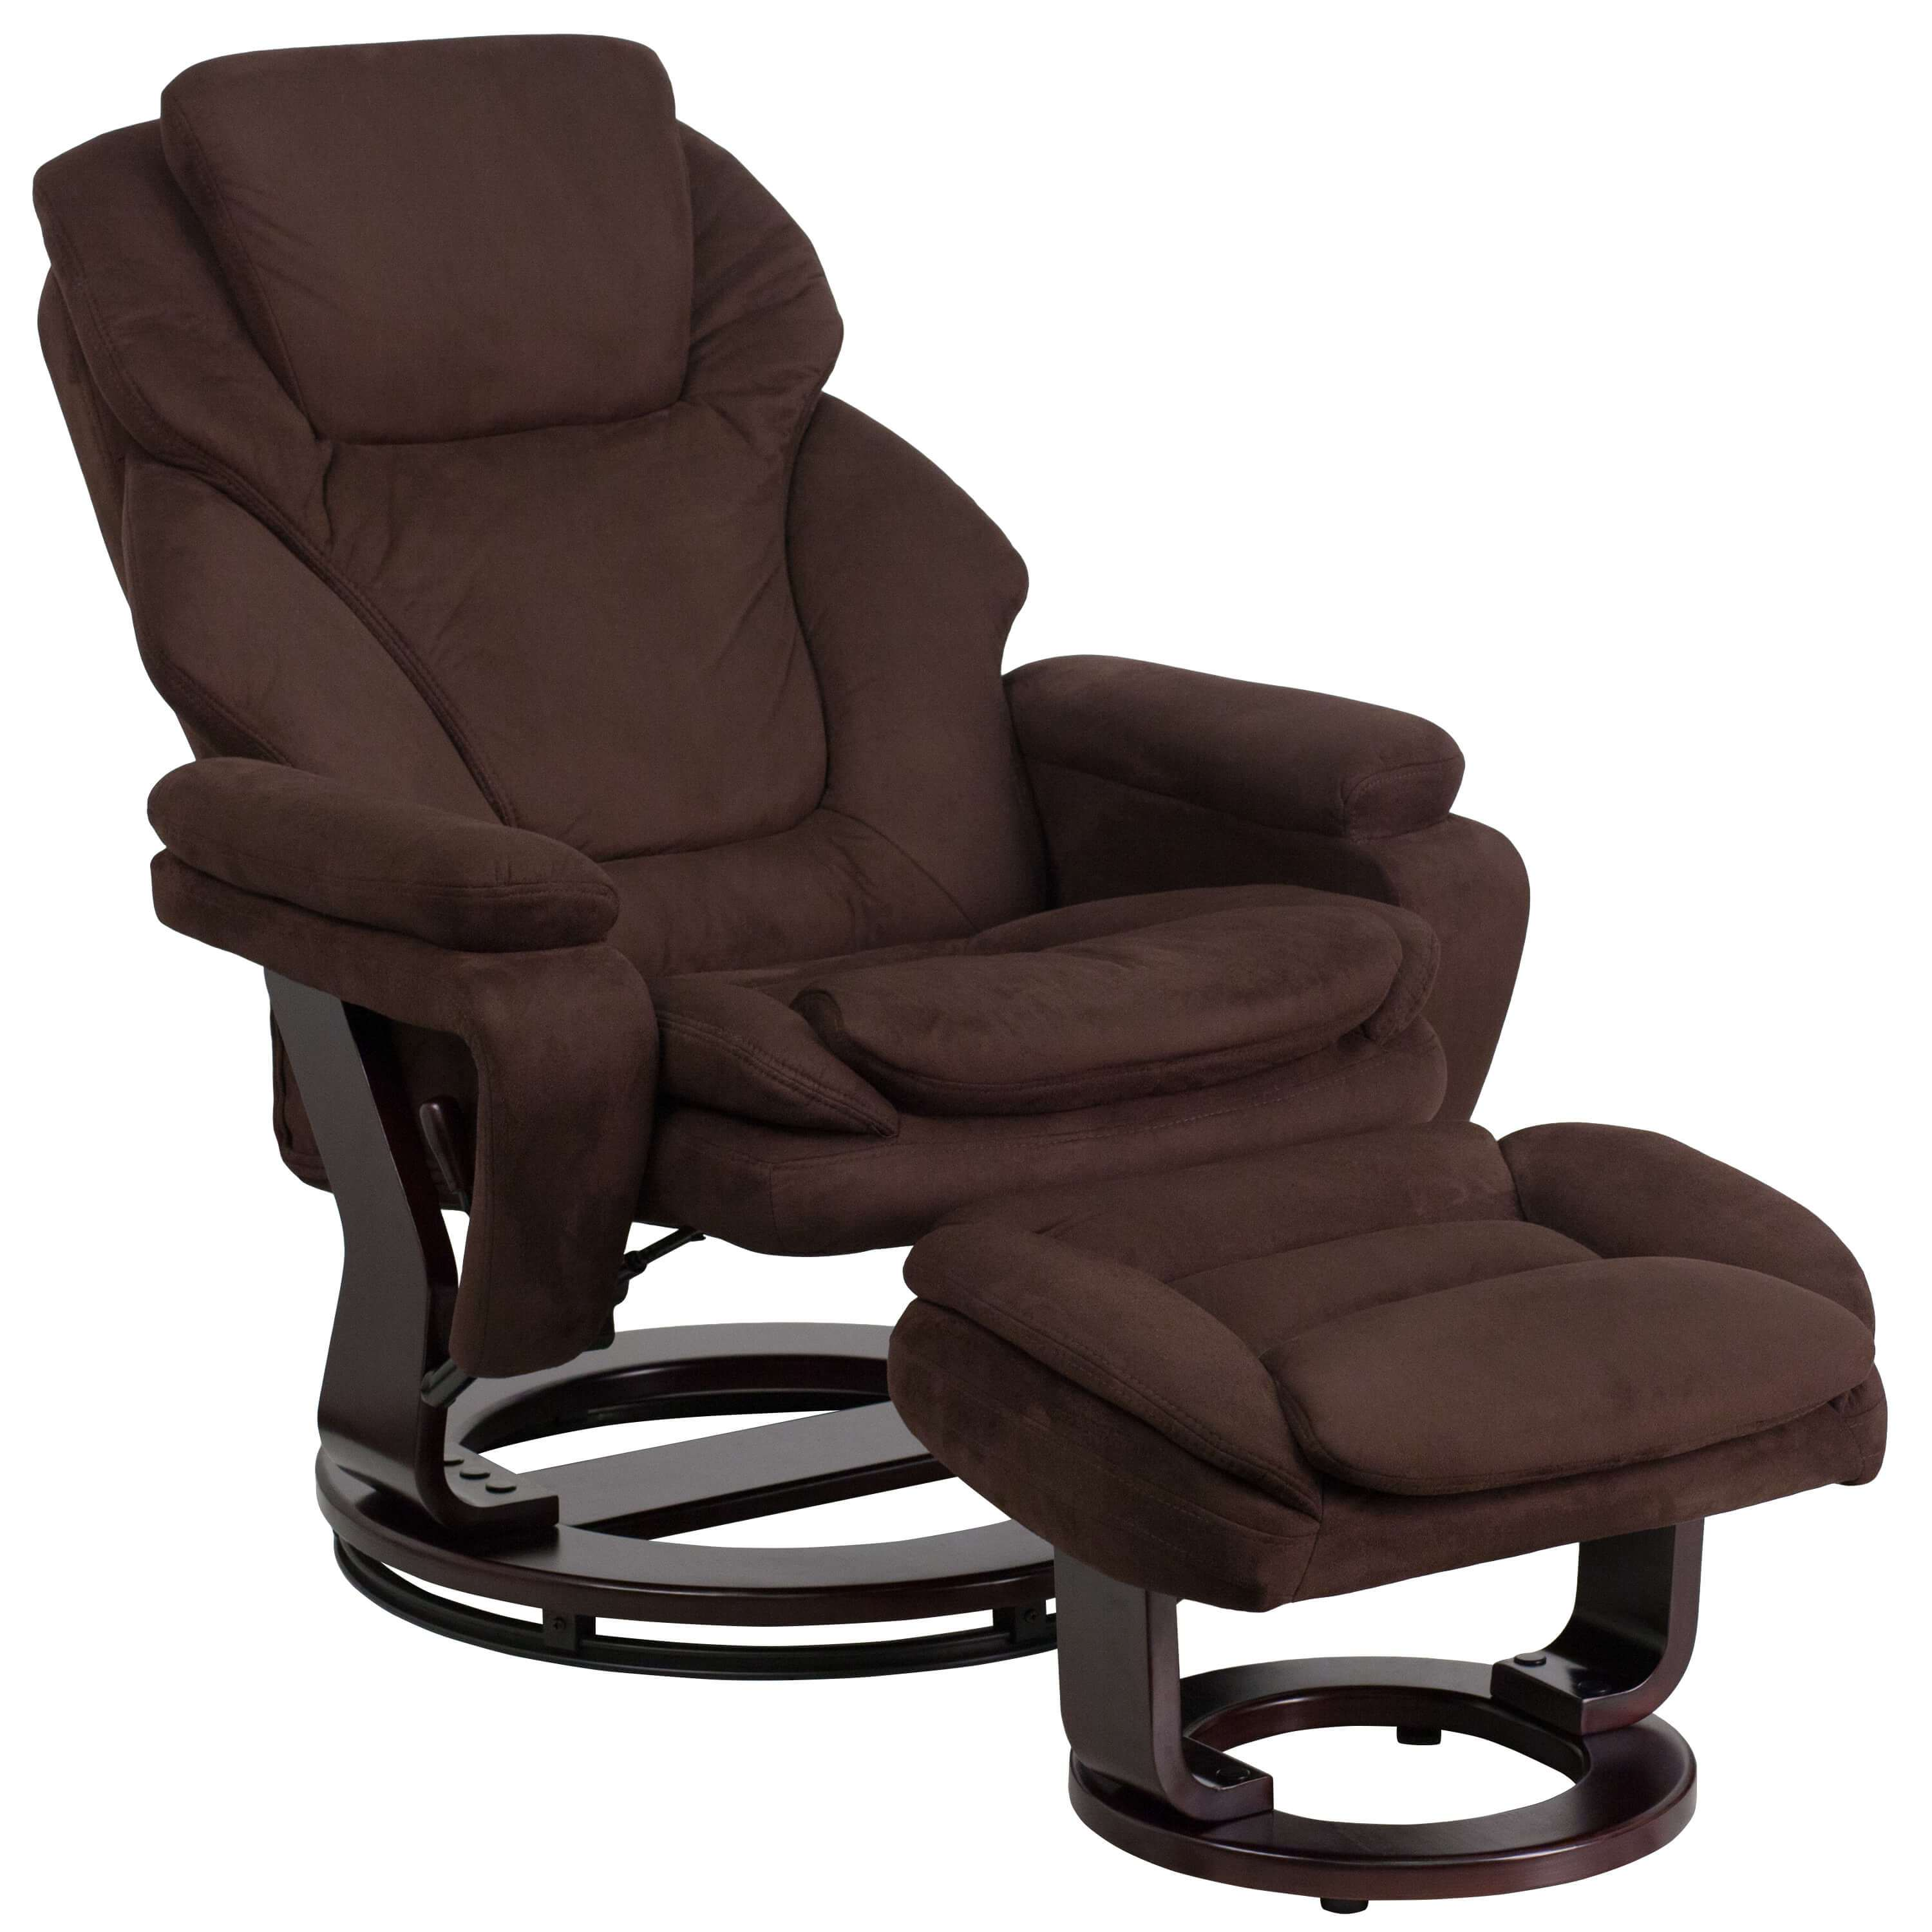 Brown recliner reclined view